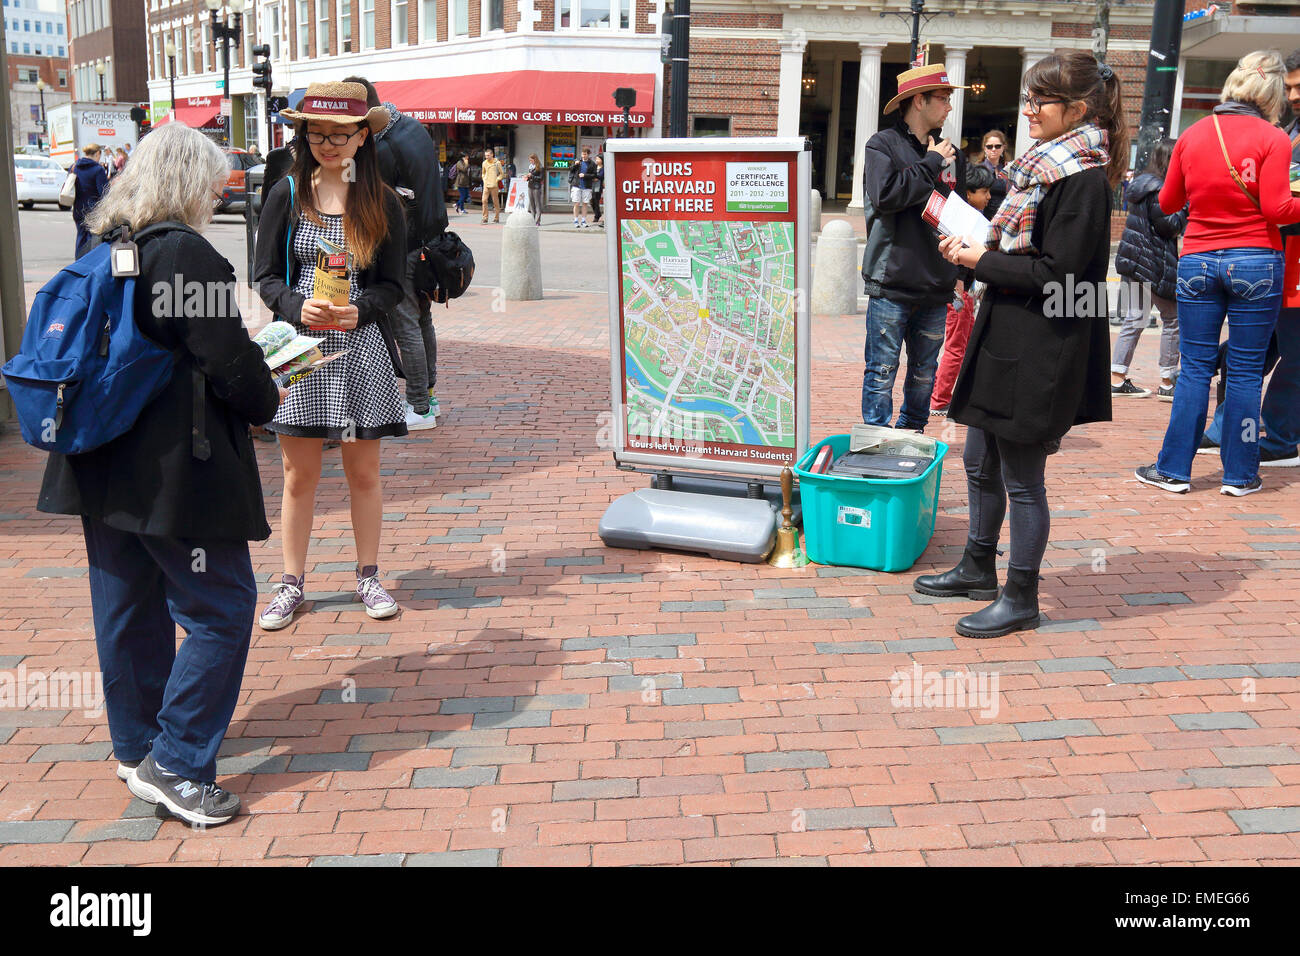 Harvard University tourists meet with tour guides in Cambridge, Massachusetts, USA. - Stock Image